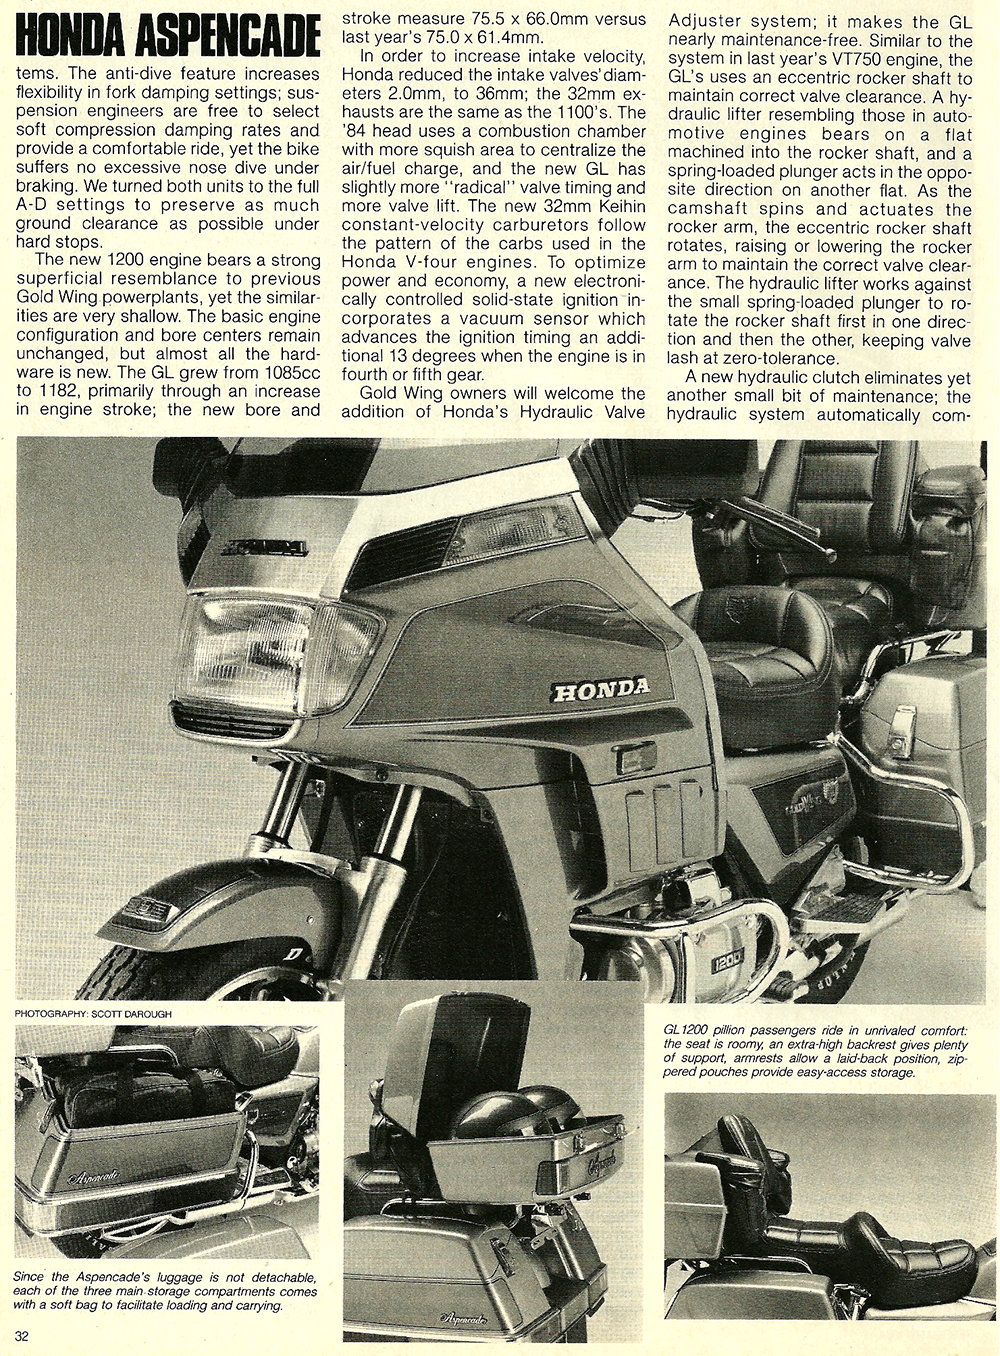 1984 Honda GL1200A Gold Wing Aspencade road test 5.jpg